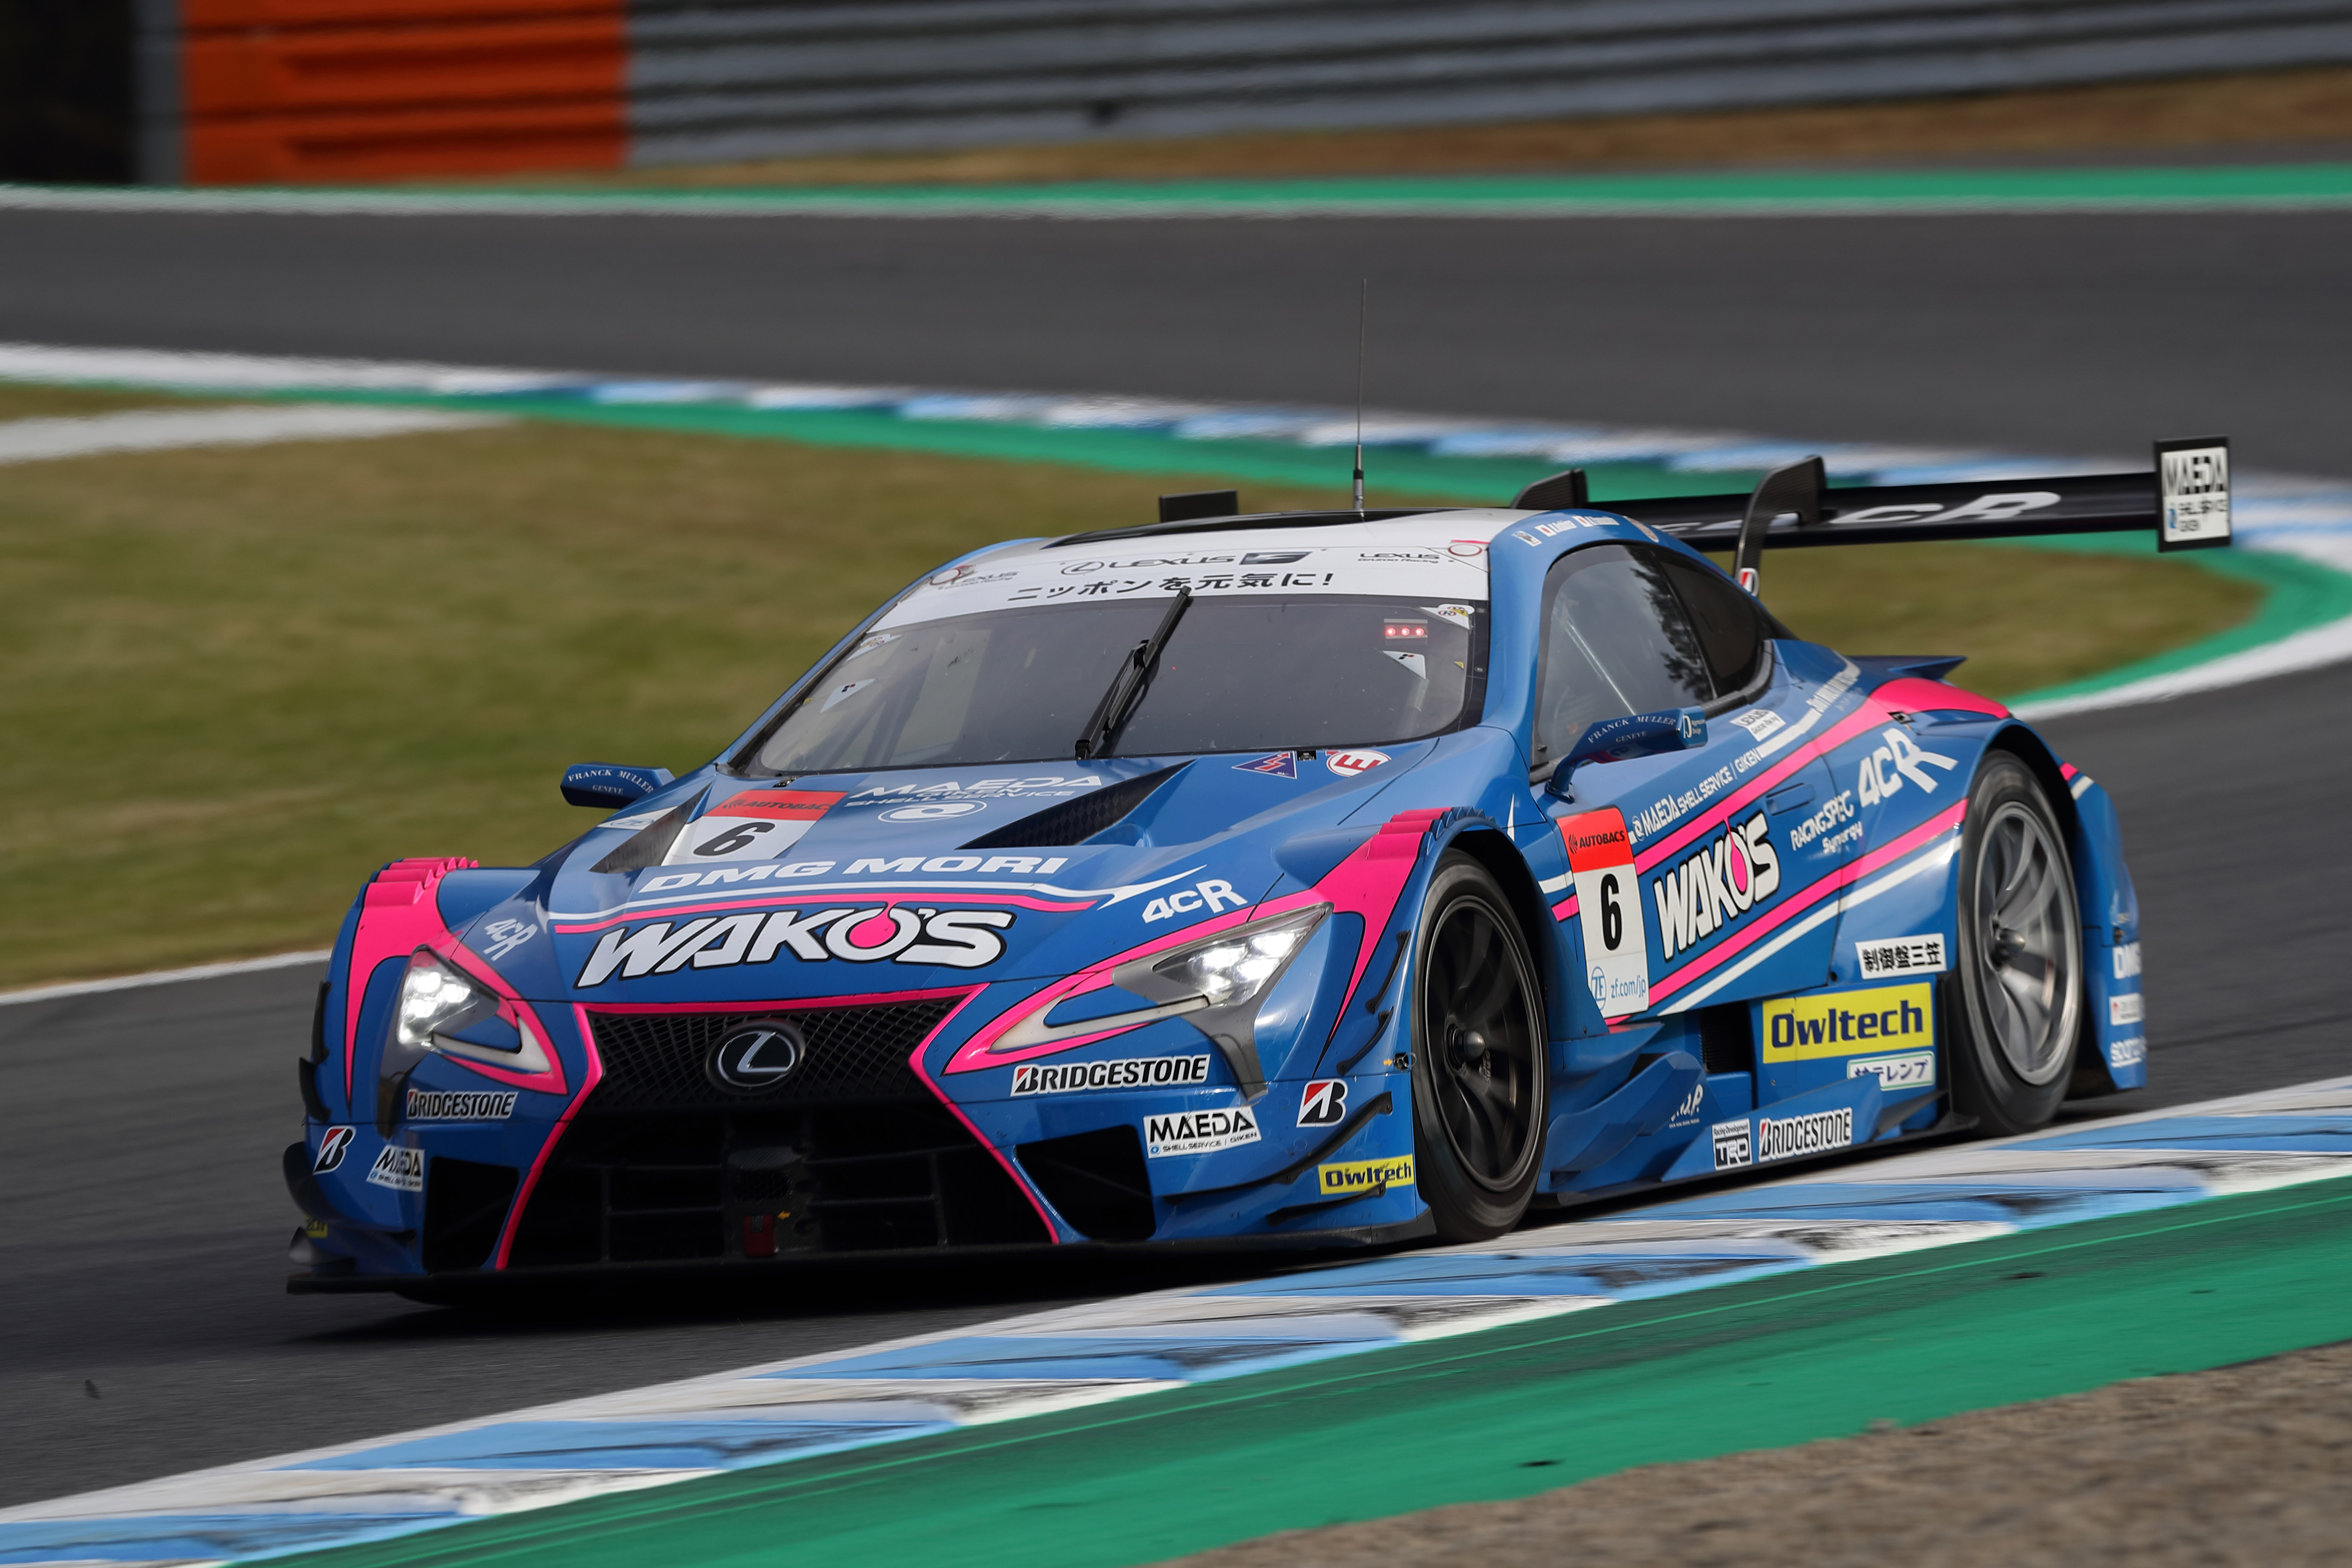 LEXUS SEALS FINAL CHAMPIONSHIP SUCCESS Image